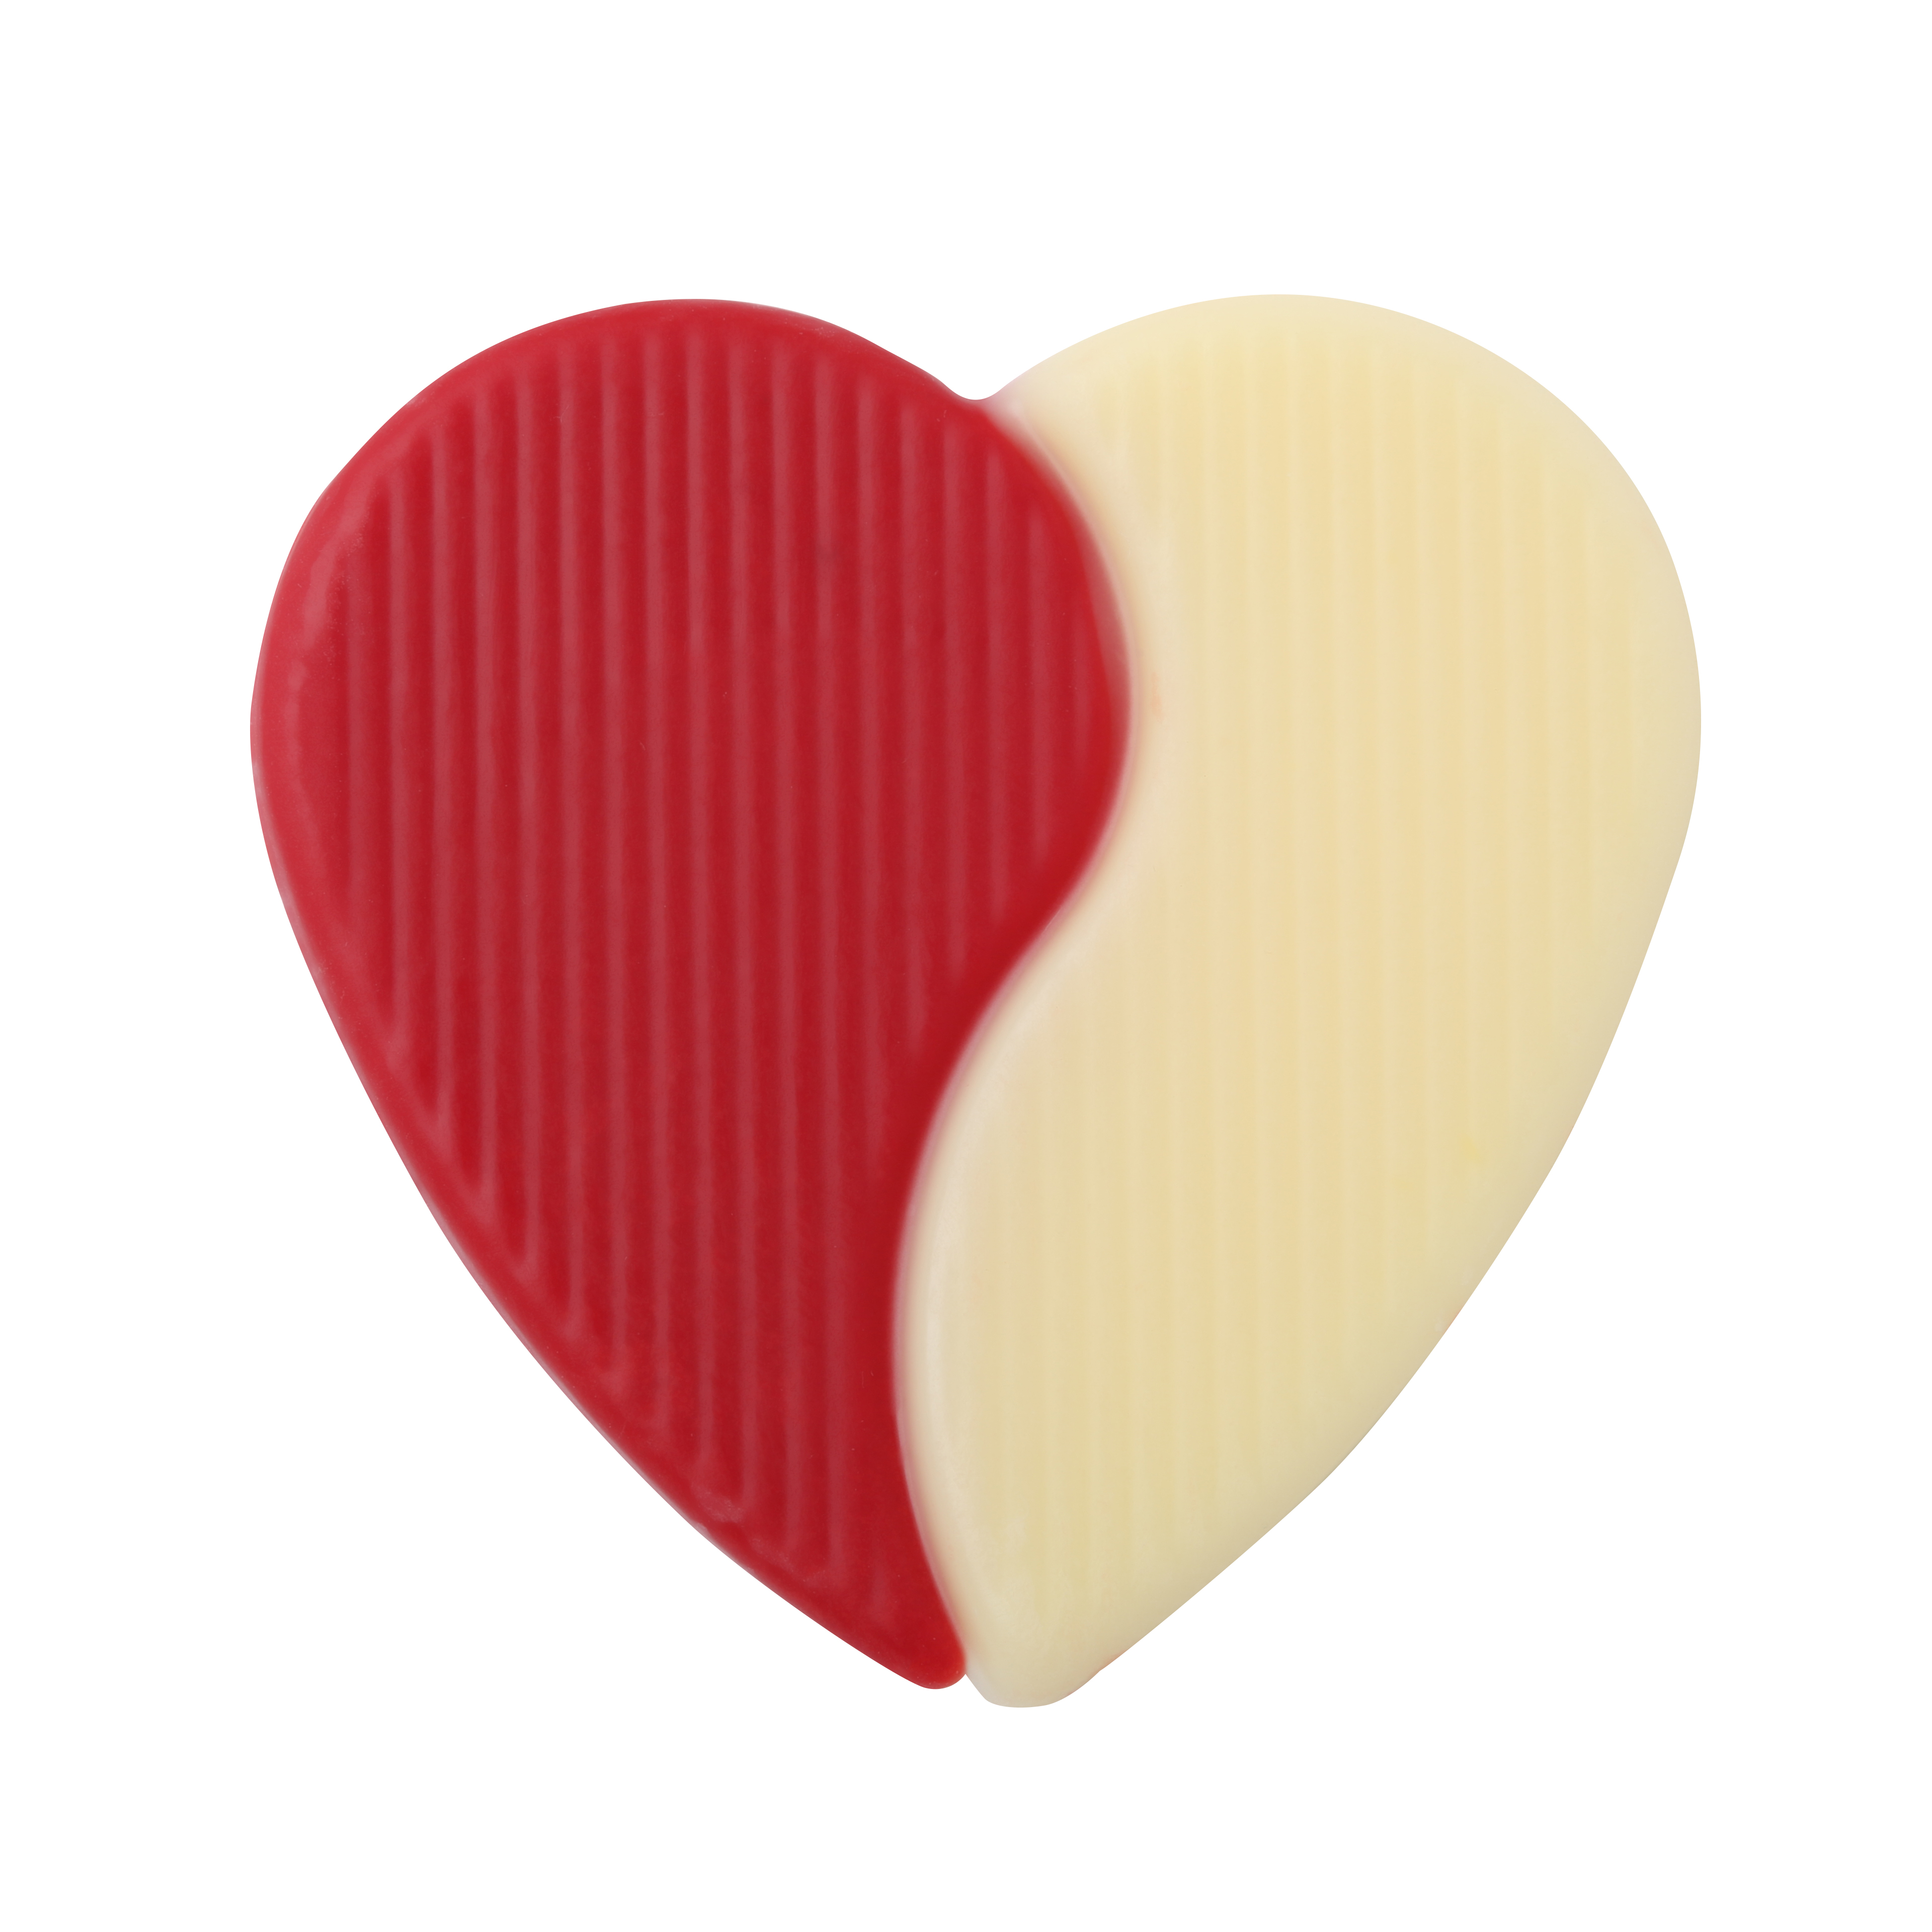 Signature decorations (Jura) - Red and Ivory Duo Heart